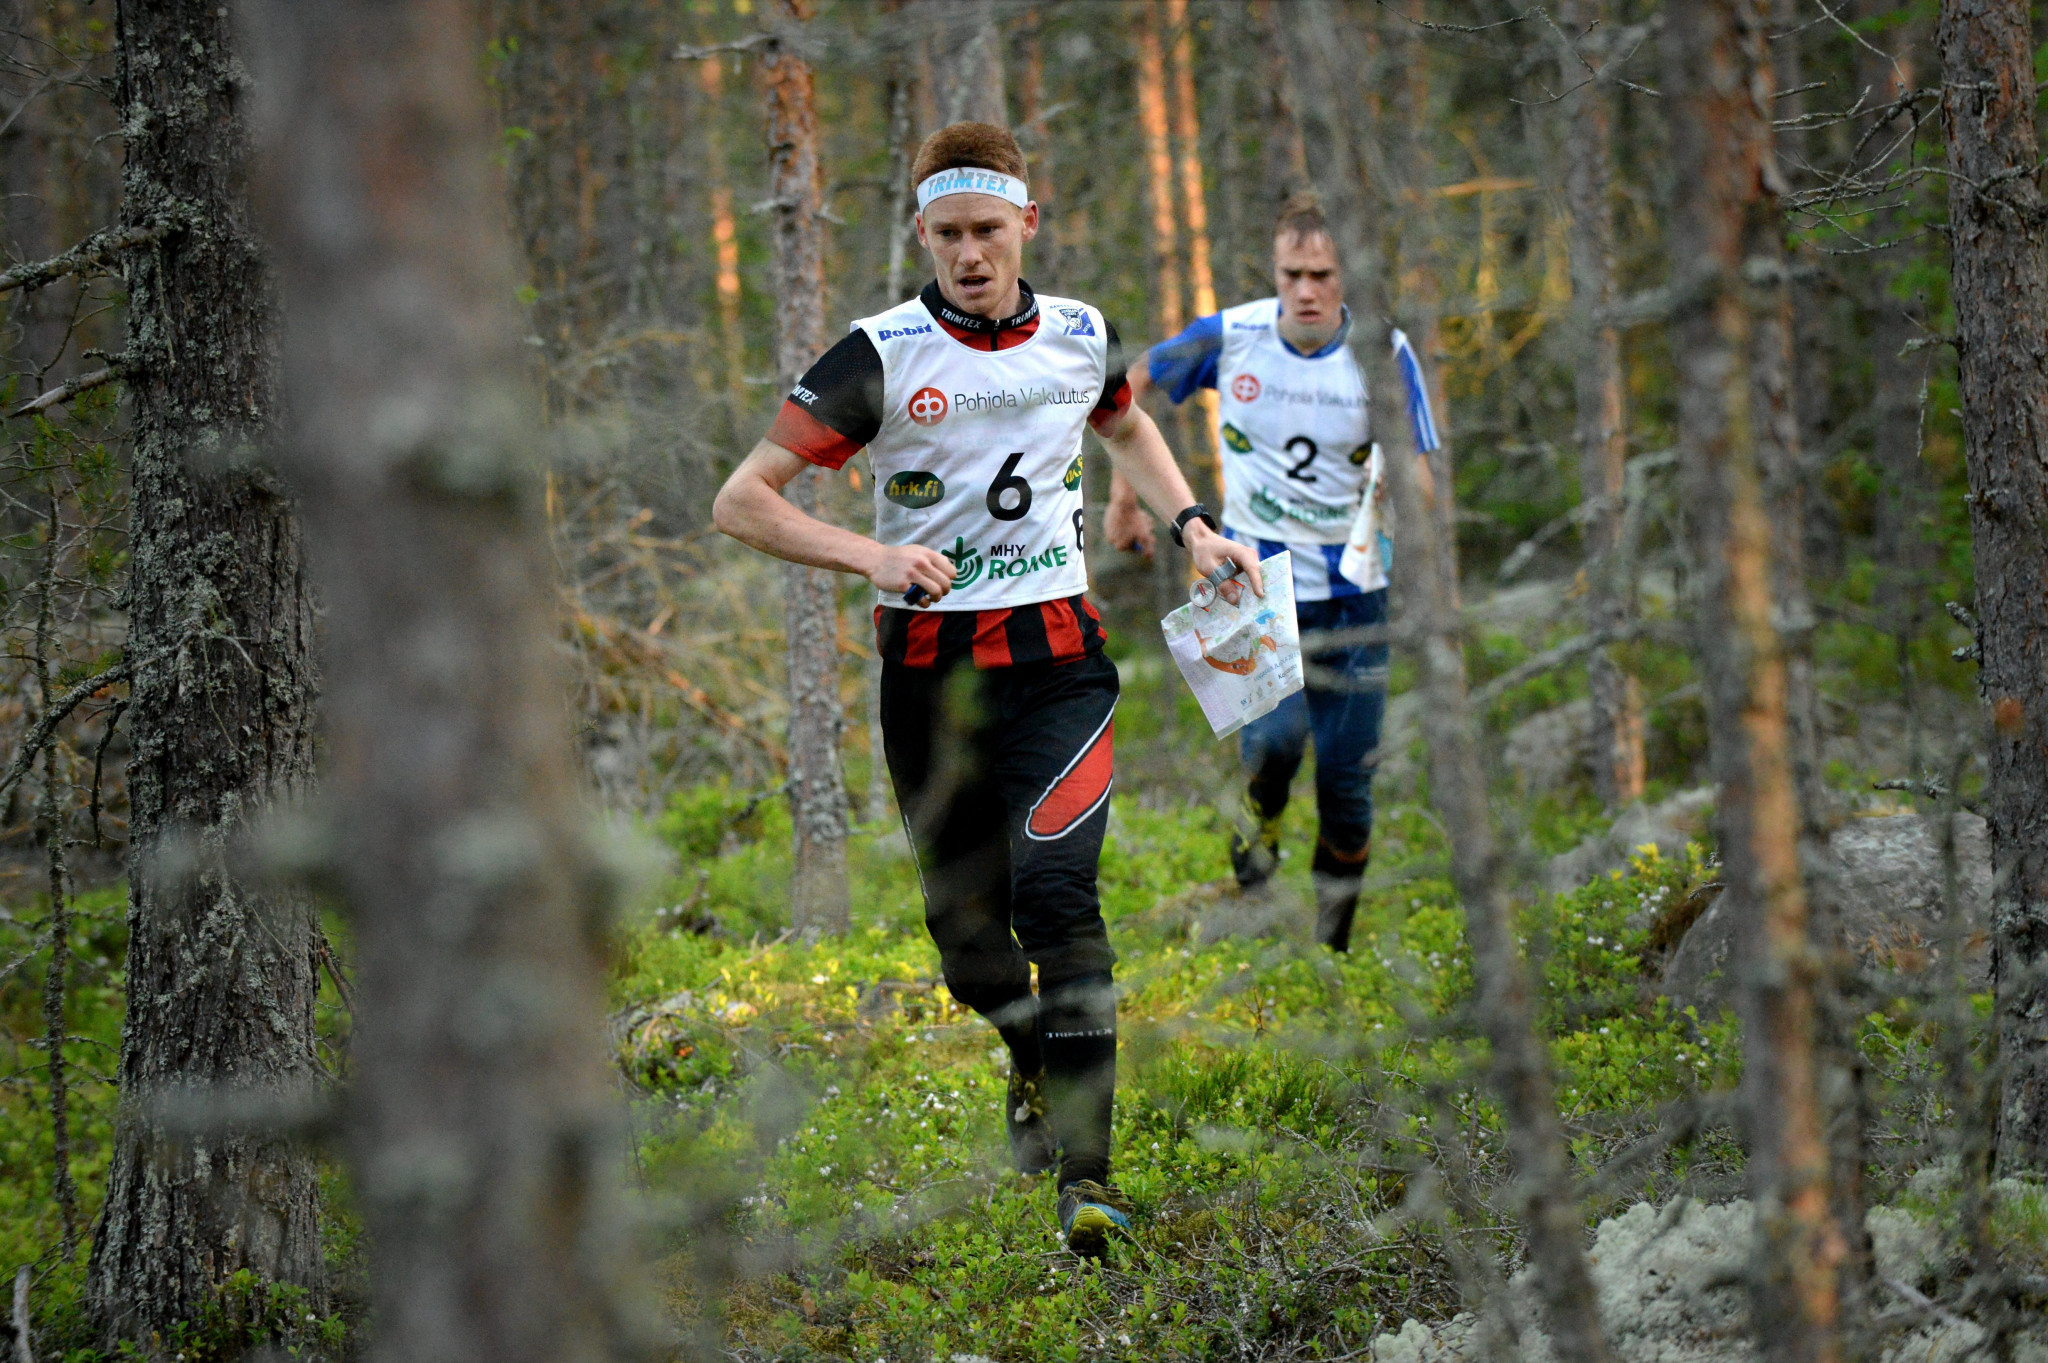 New era for World Orienteering Championships with streamlined format to debut in Norway